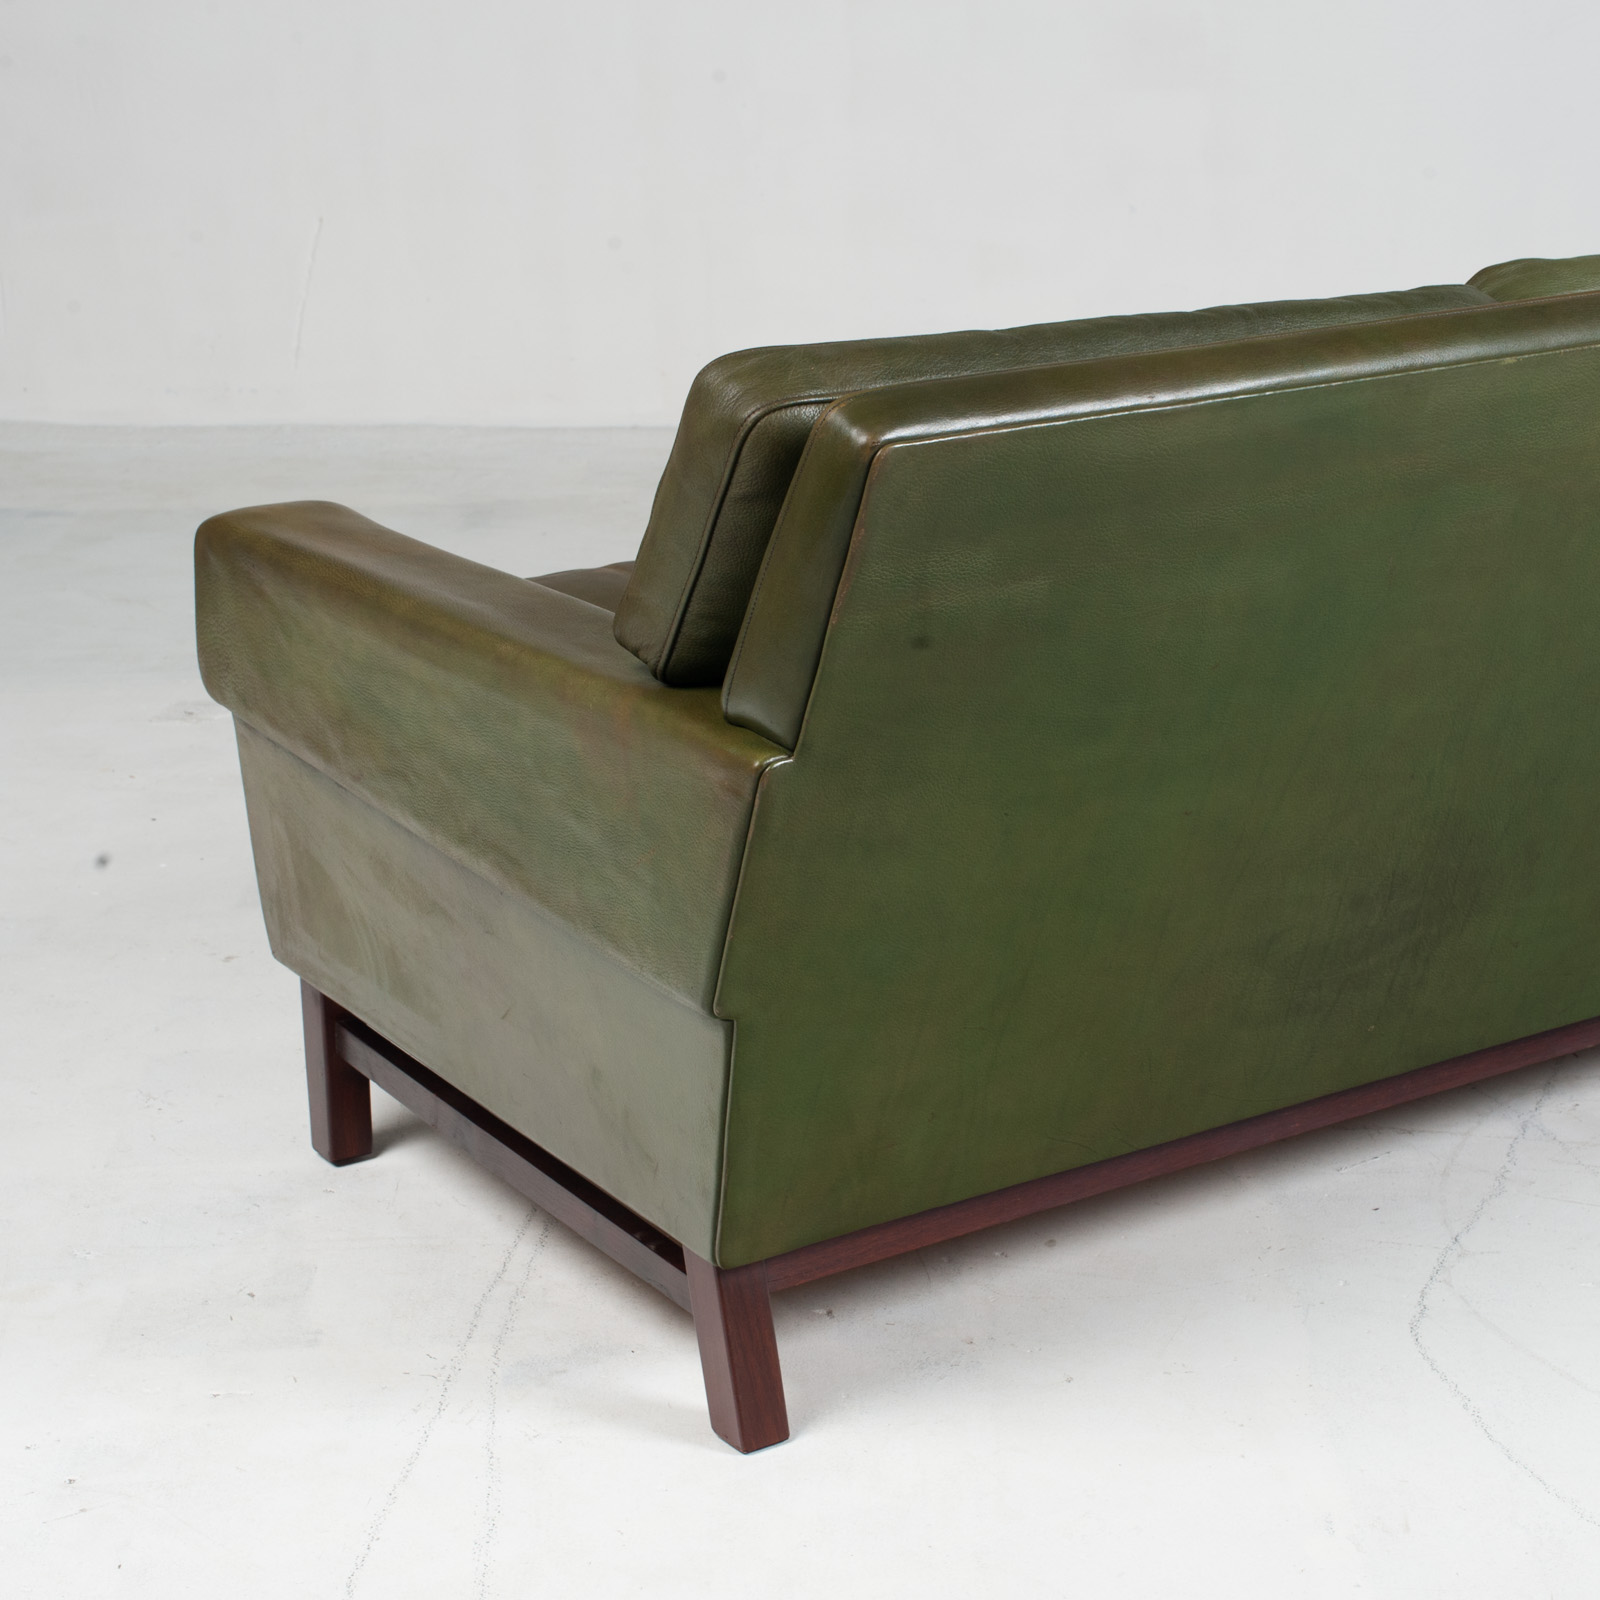 4 Seat Sofa In Olive Leather 1960s Denmark 013